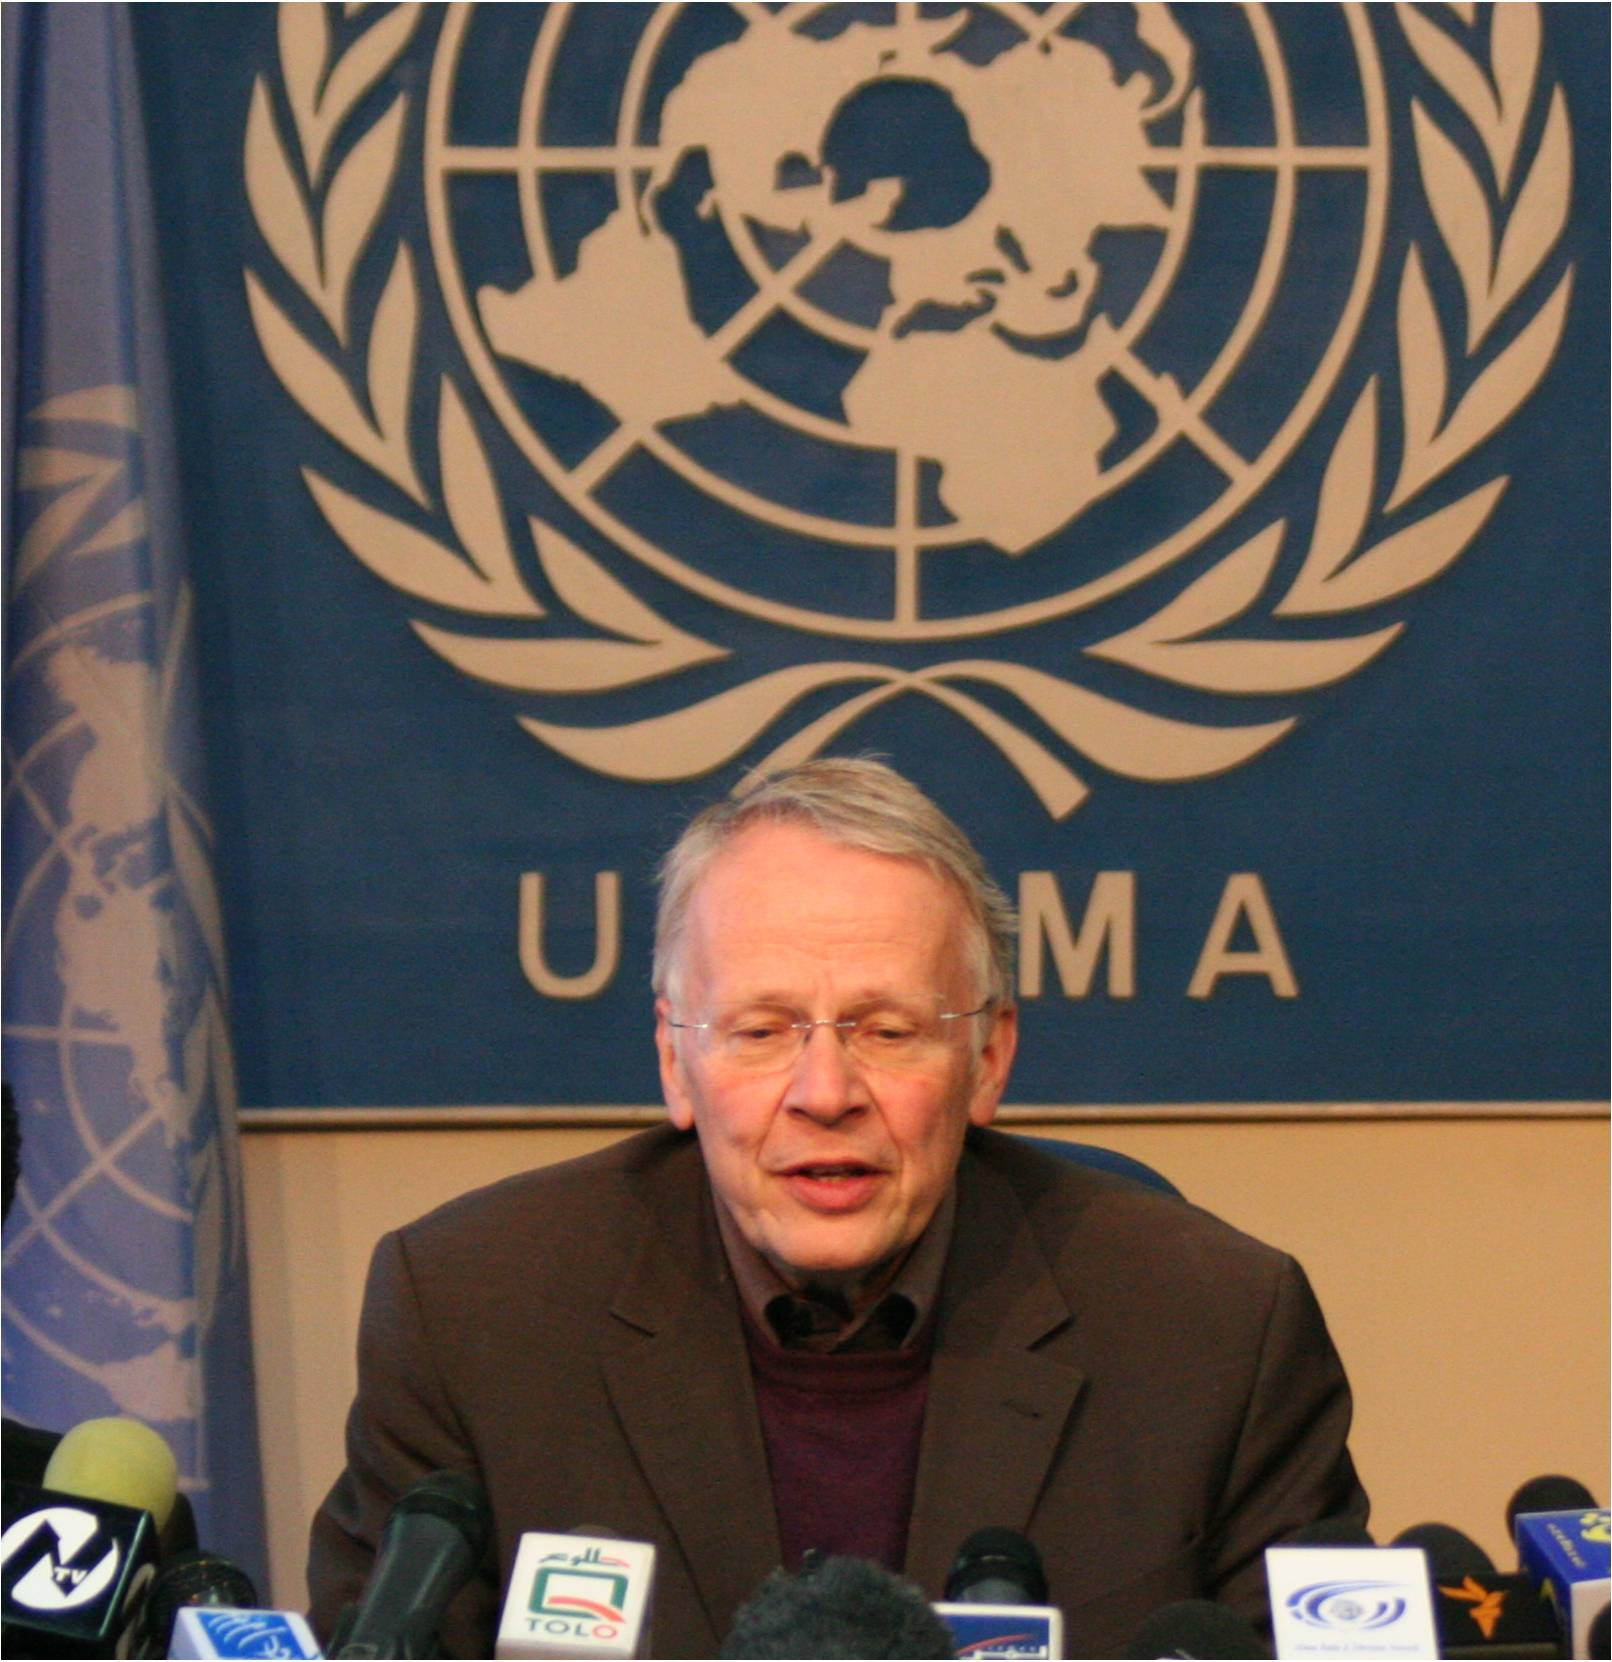 Tom Koenigs served as Special Representative  of the UN Secretary-General for Afghanistan and head of the UN Assistance Mission in Afghanistan (UNAMA) from March 2006 to December 2007.